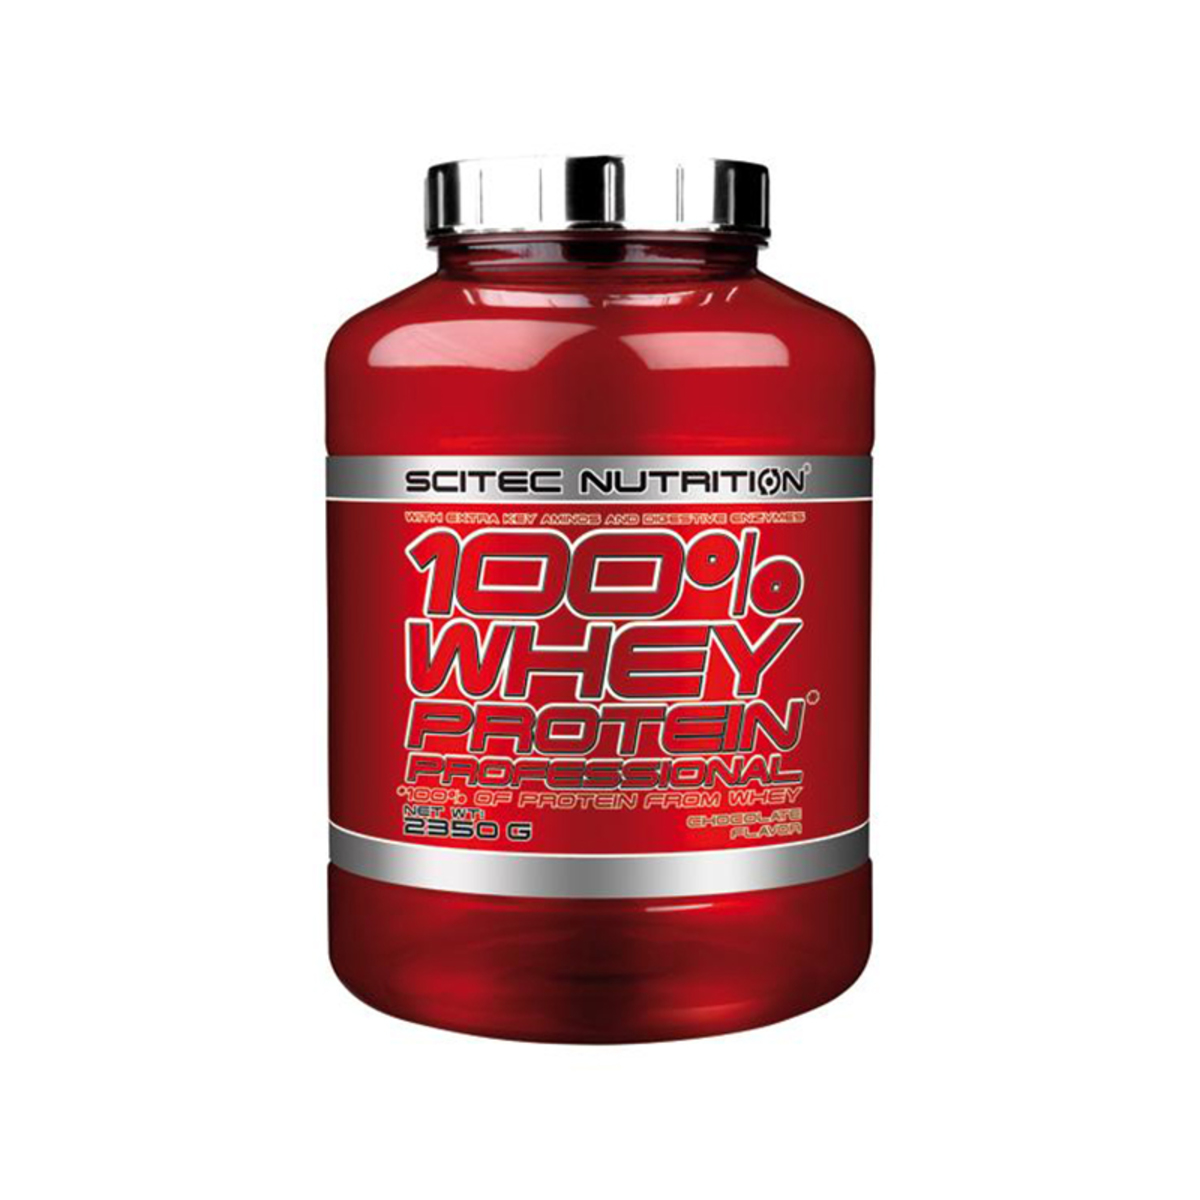 100% Whey Protein Pro 2.35kg (Chocolate)